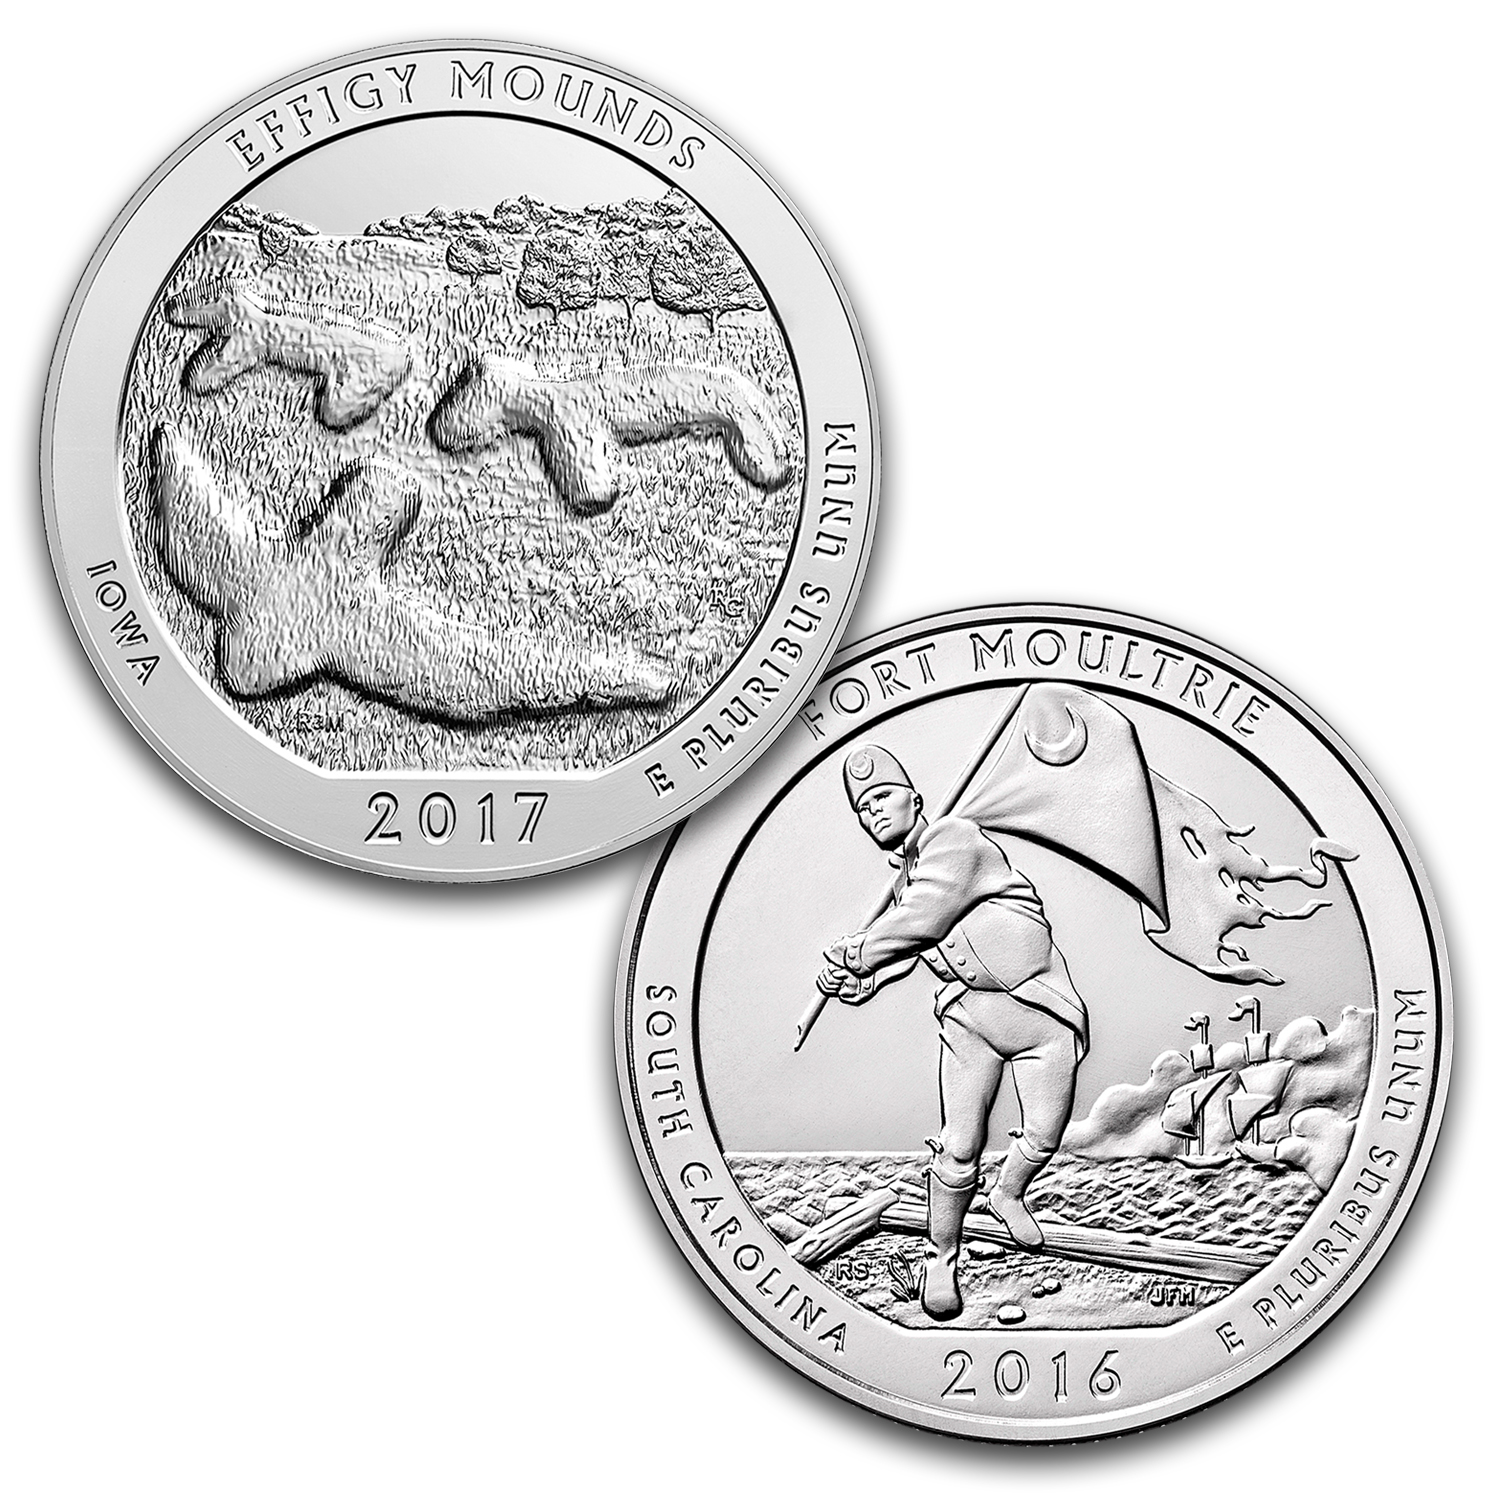 2016-2017 2-Coin 5 oz ATB Coins: Effigy Mounds/Fort Moultrie